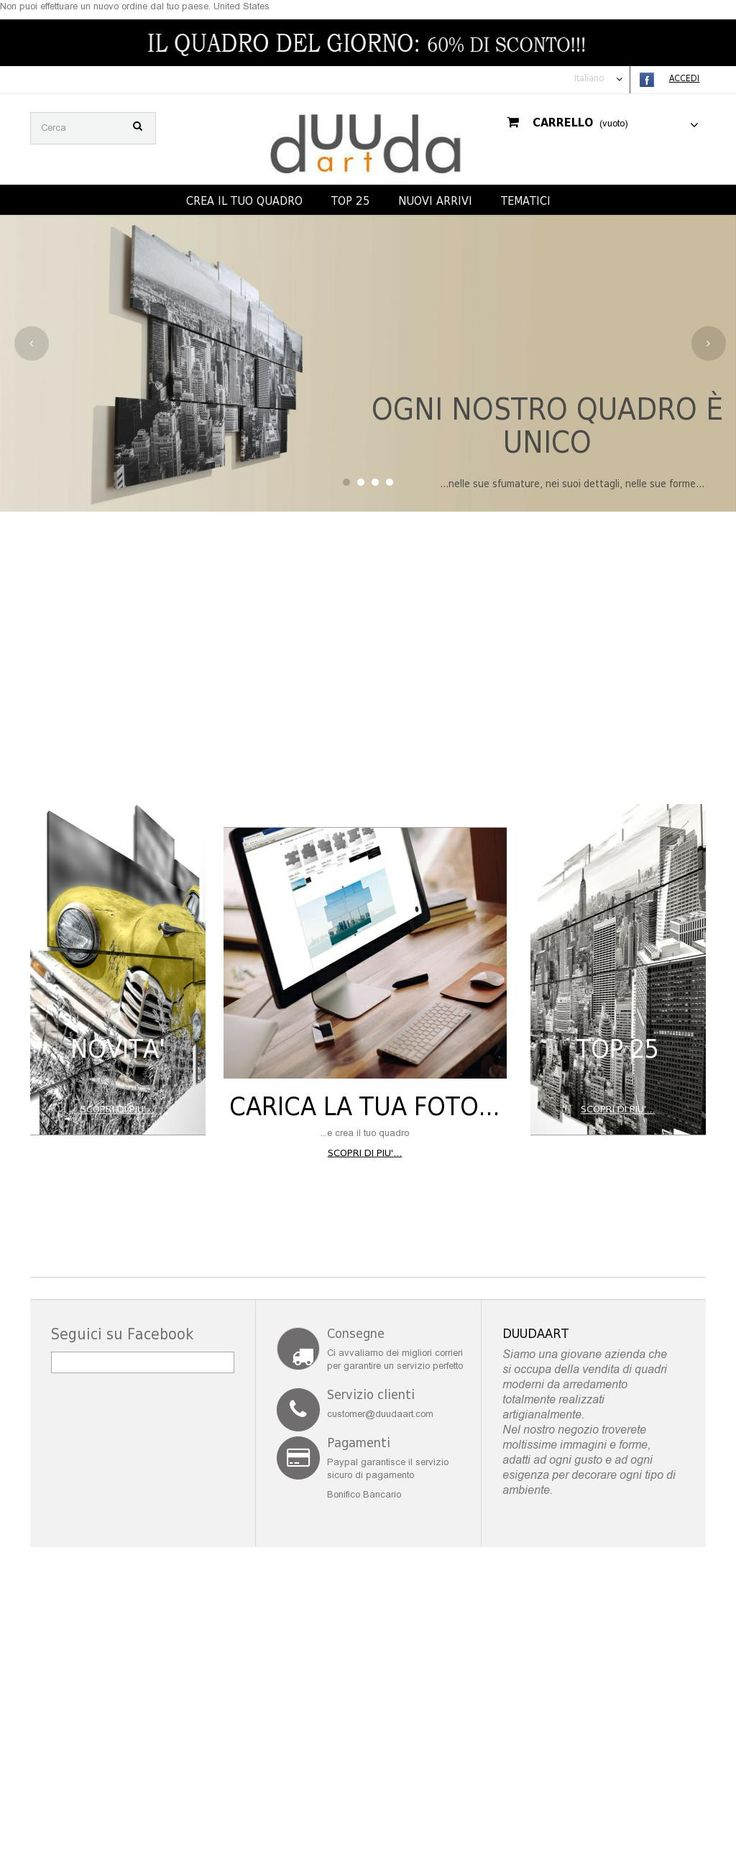 Our website www.duudaart.com (Double version: Italian/English) #website #duudaart